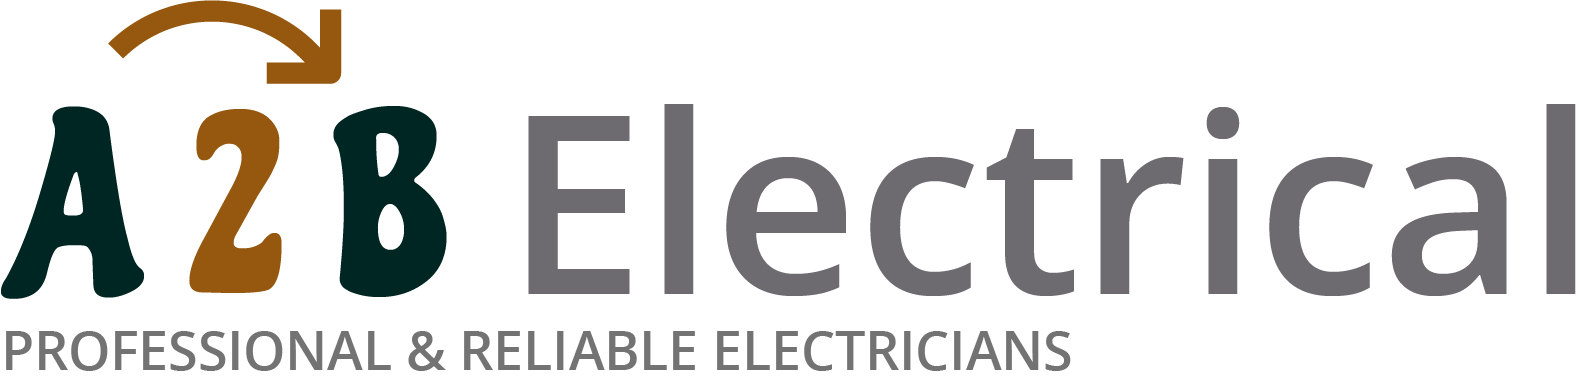 If you have electrical wiring problems in East Molesey, we can provide an electrician to have a look for you.